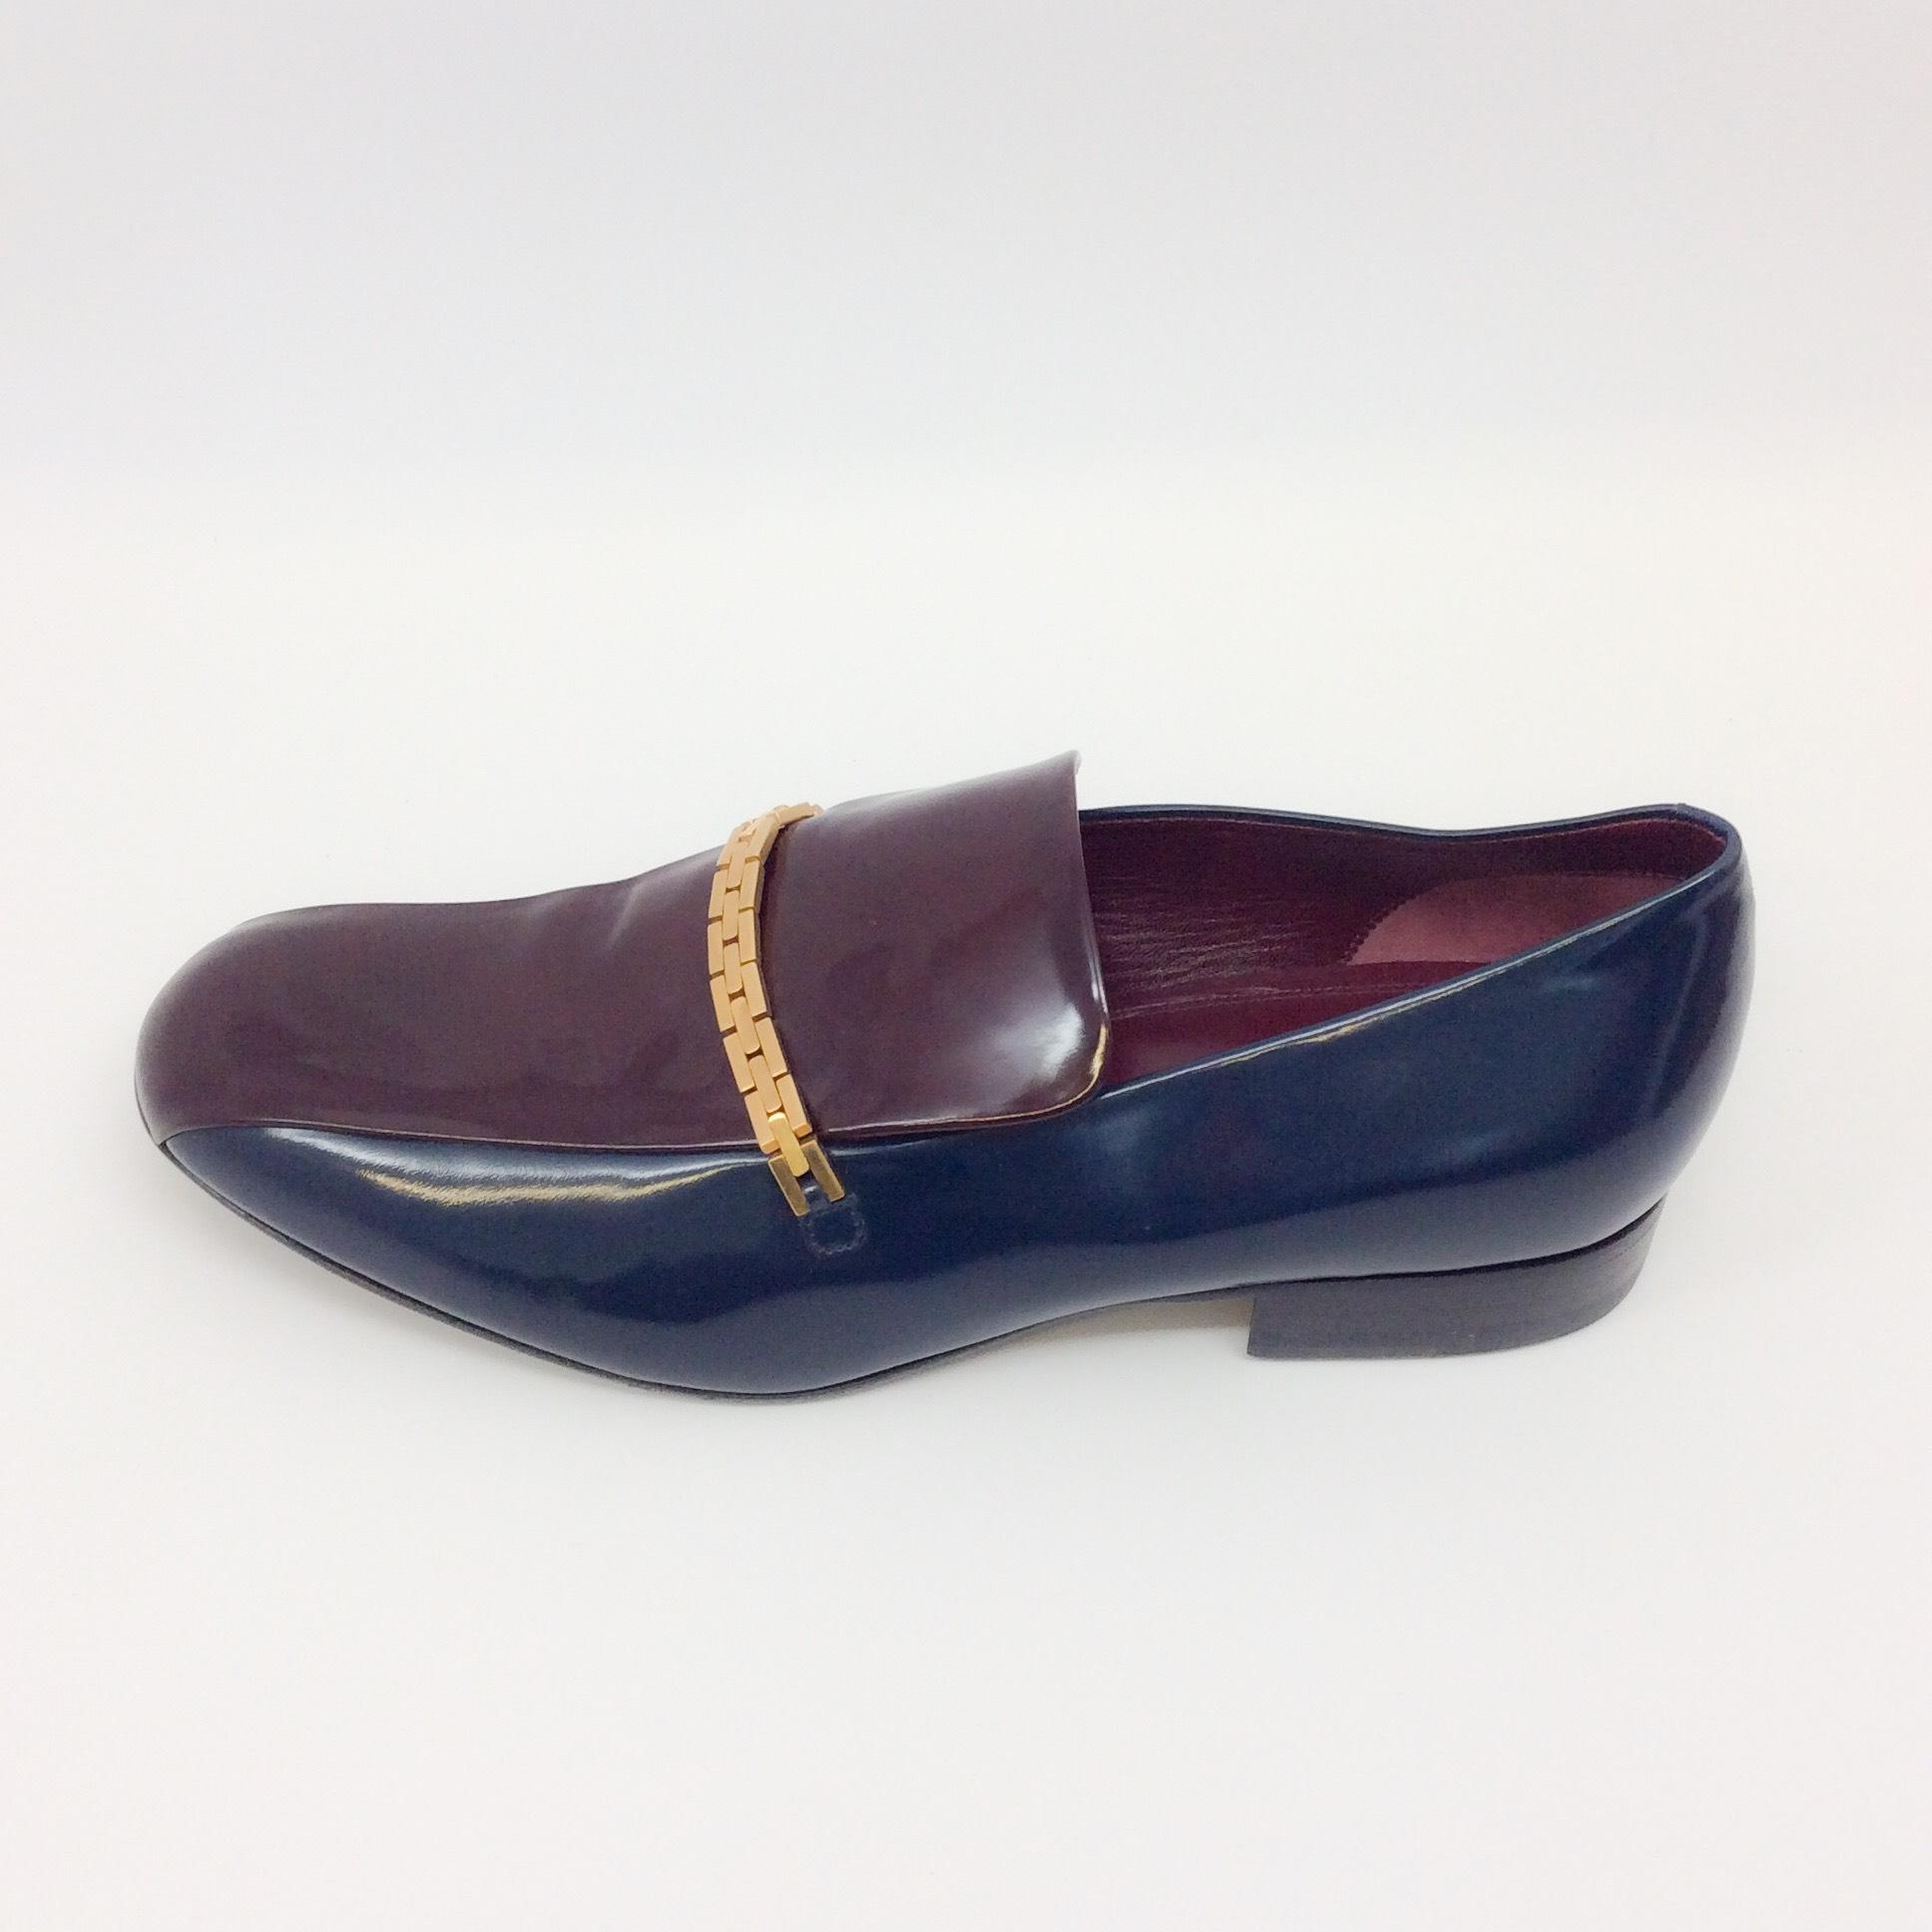 Céline Navy Loafers